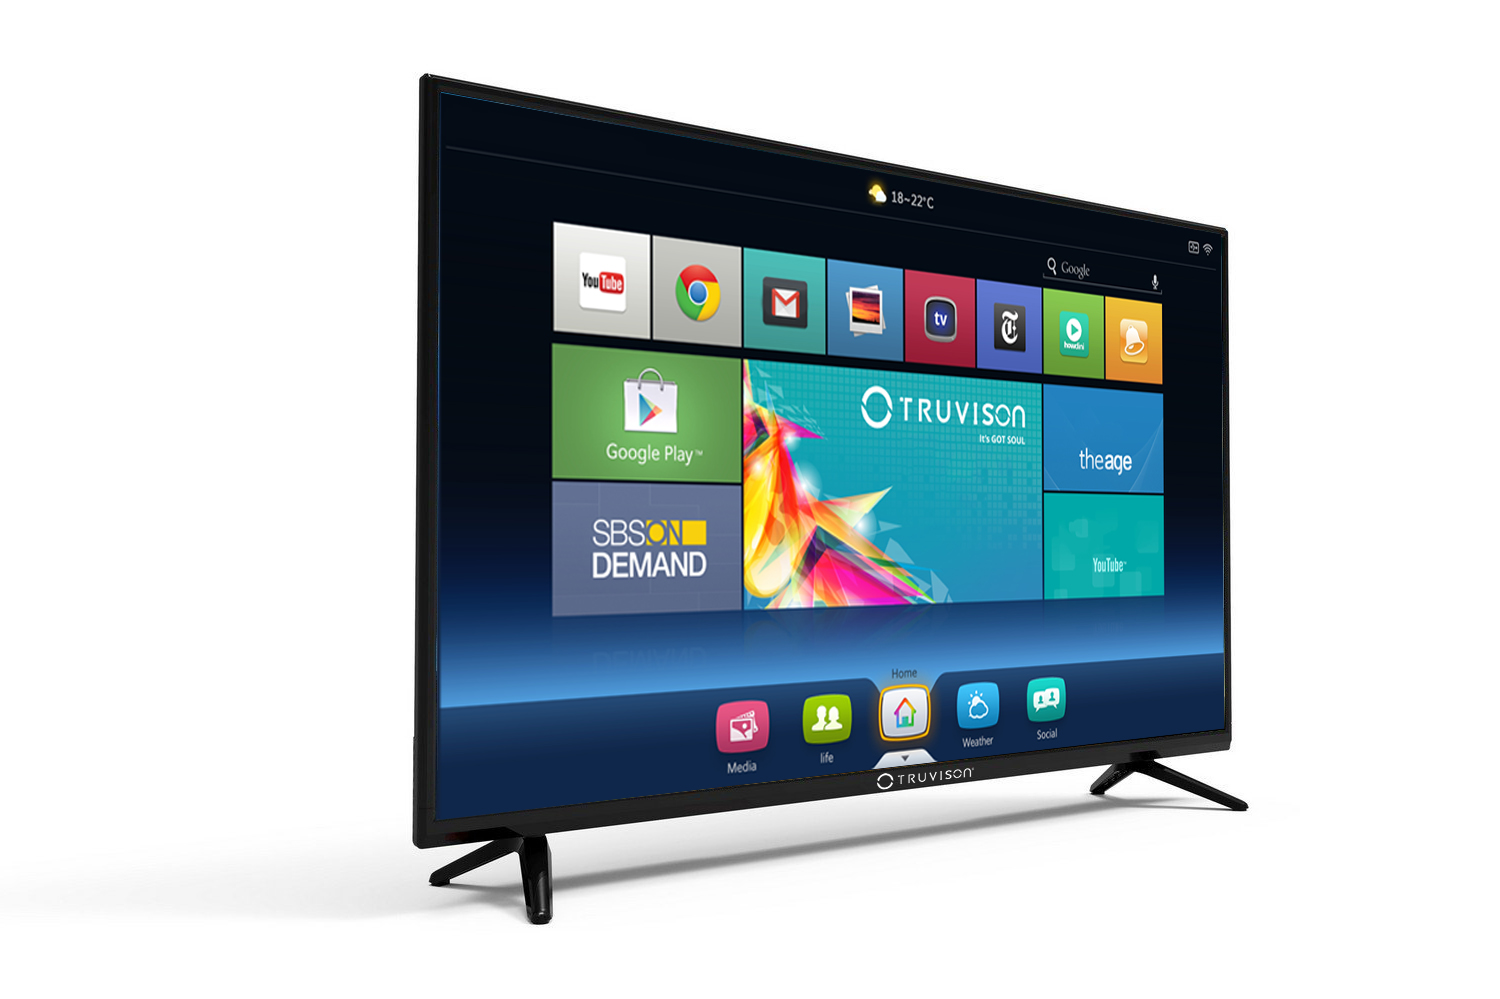 40 Inch Smart Tv Deals Truvison Introduces Its Newest 40inch Smart Led Hd Tv Tx408z